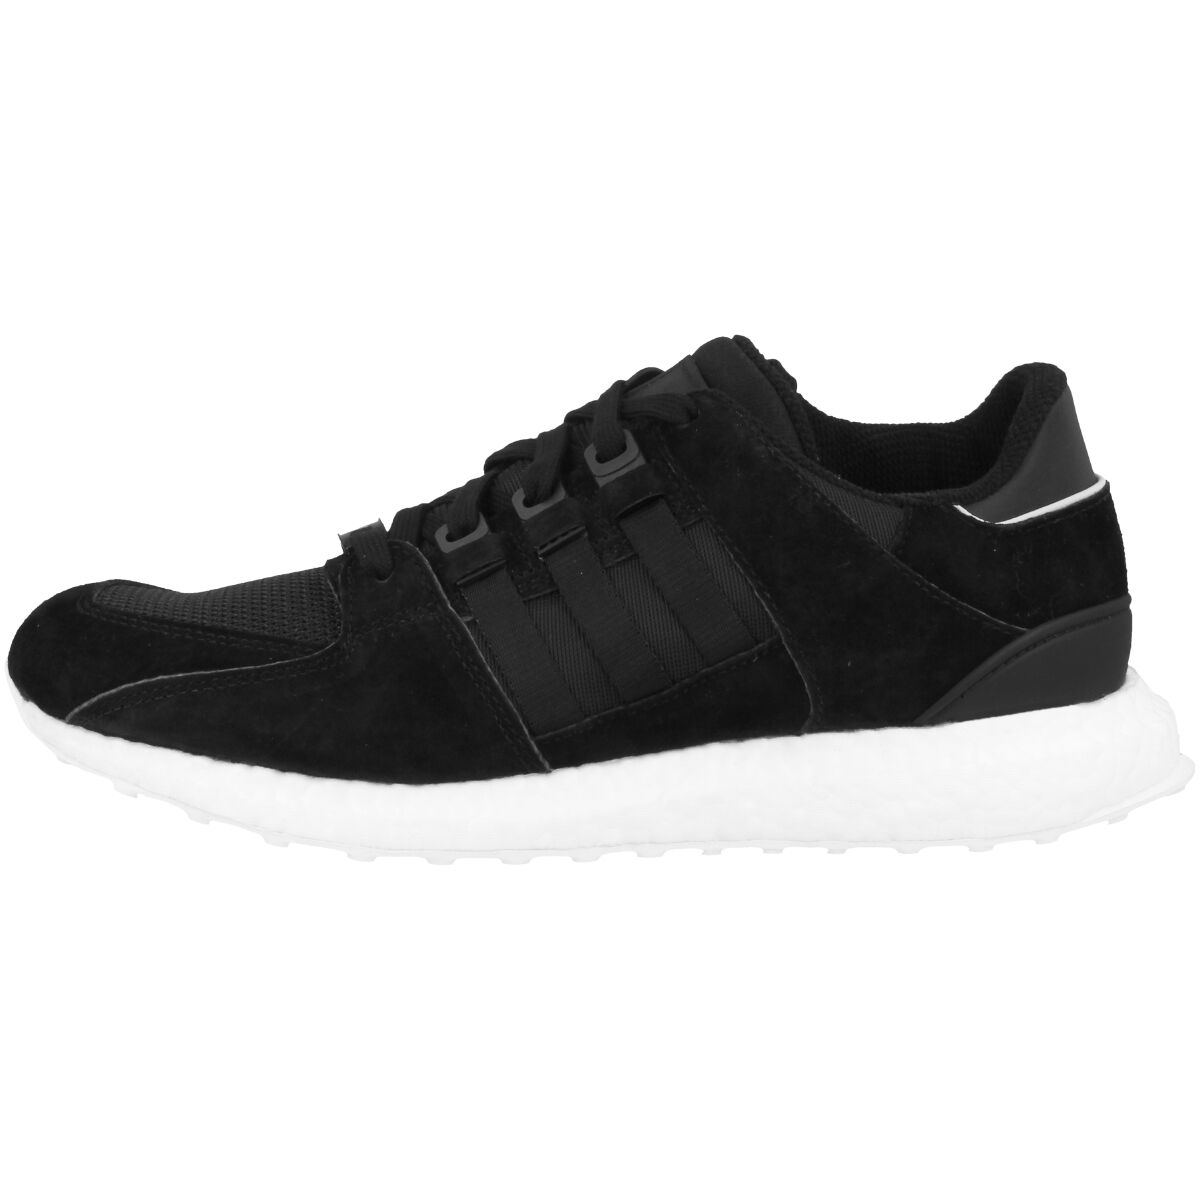 Adidas equipment support 93 16 zapatos caballero casual zapatillas zapatillas by9148